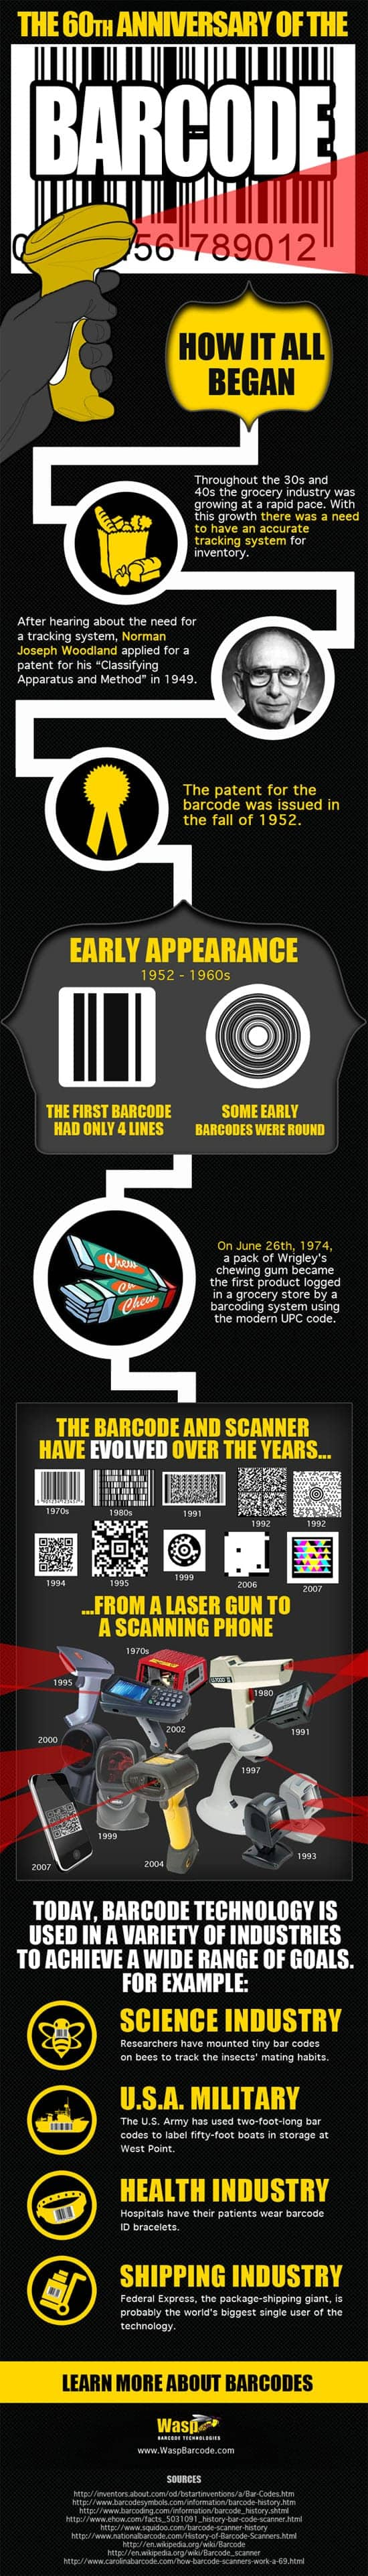 60th Anniversary of the Barcode